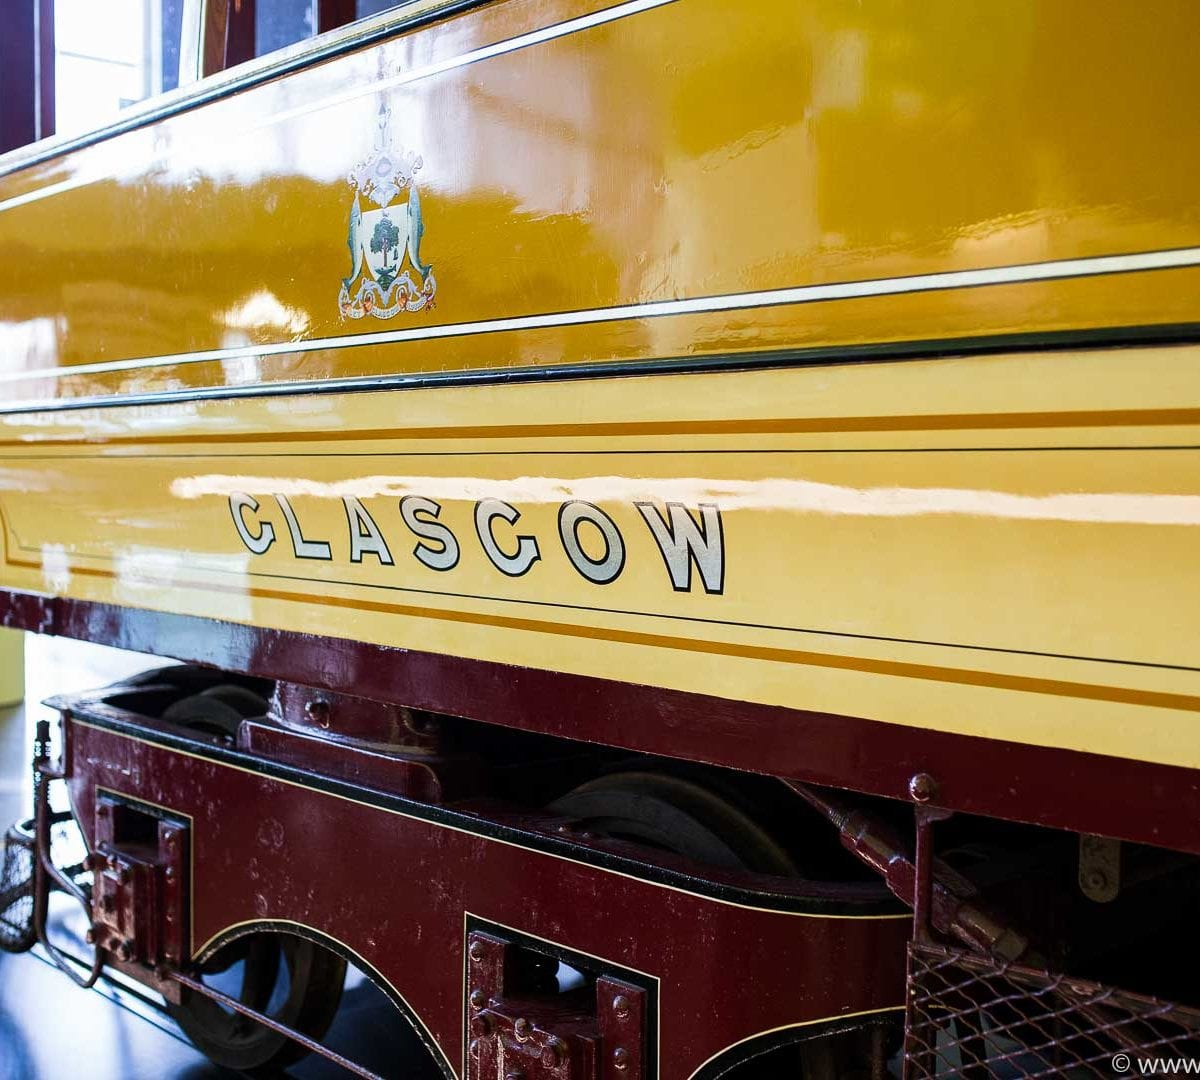 Glasgow Transportation Museum